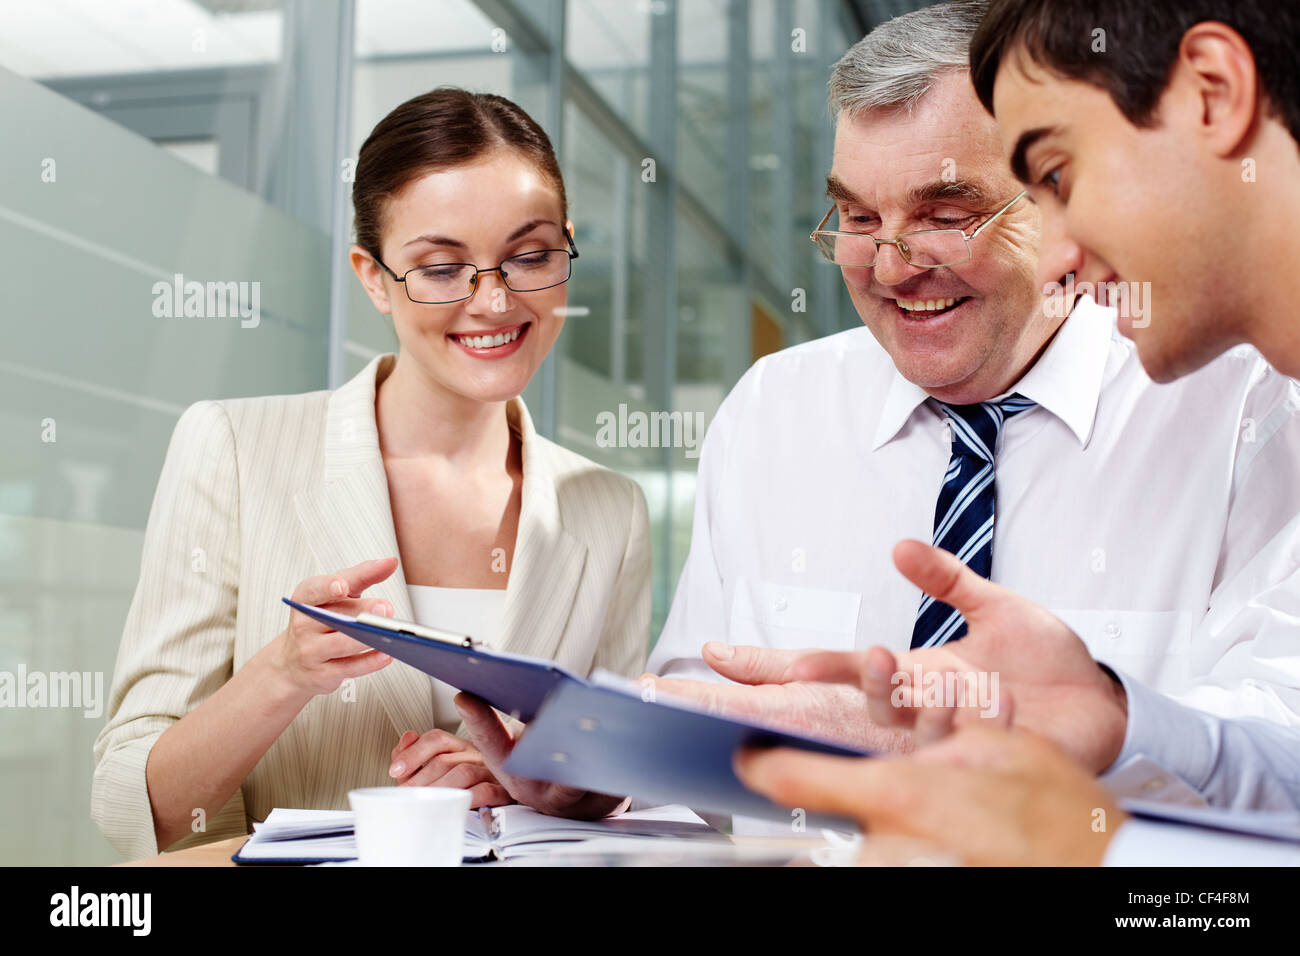 Boss approving a report of his younger subordinates - Stock Image